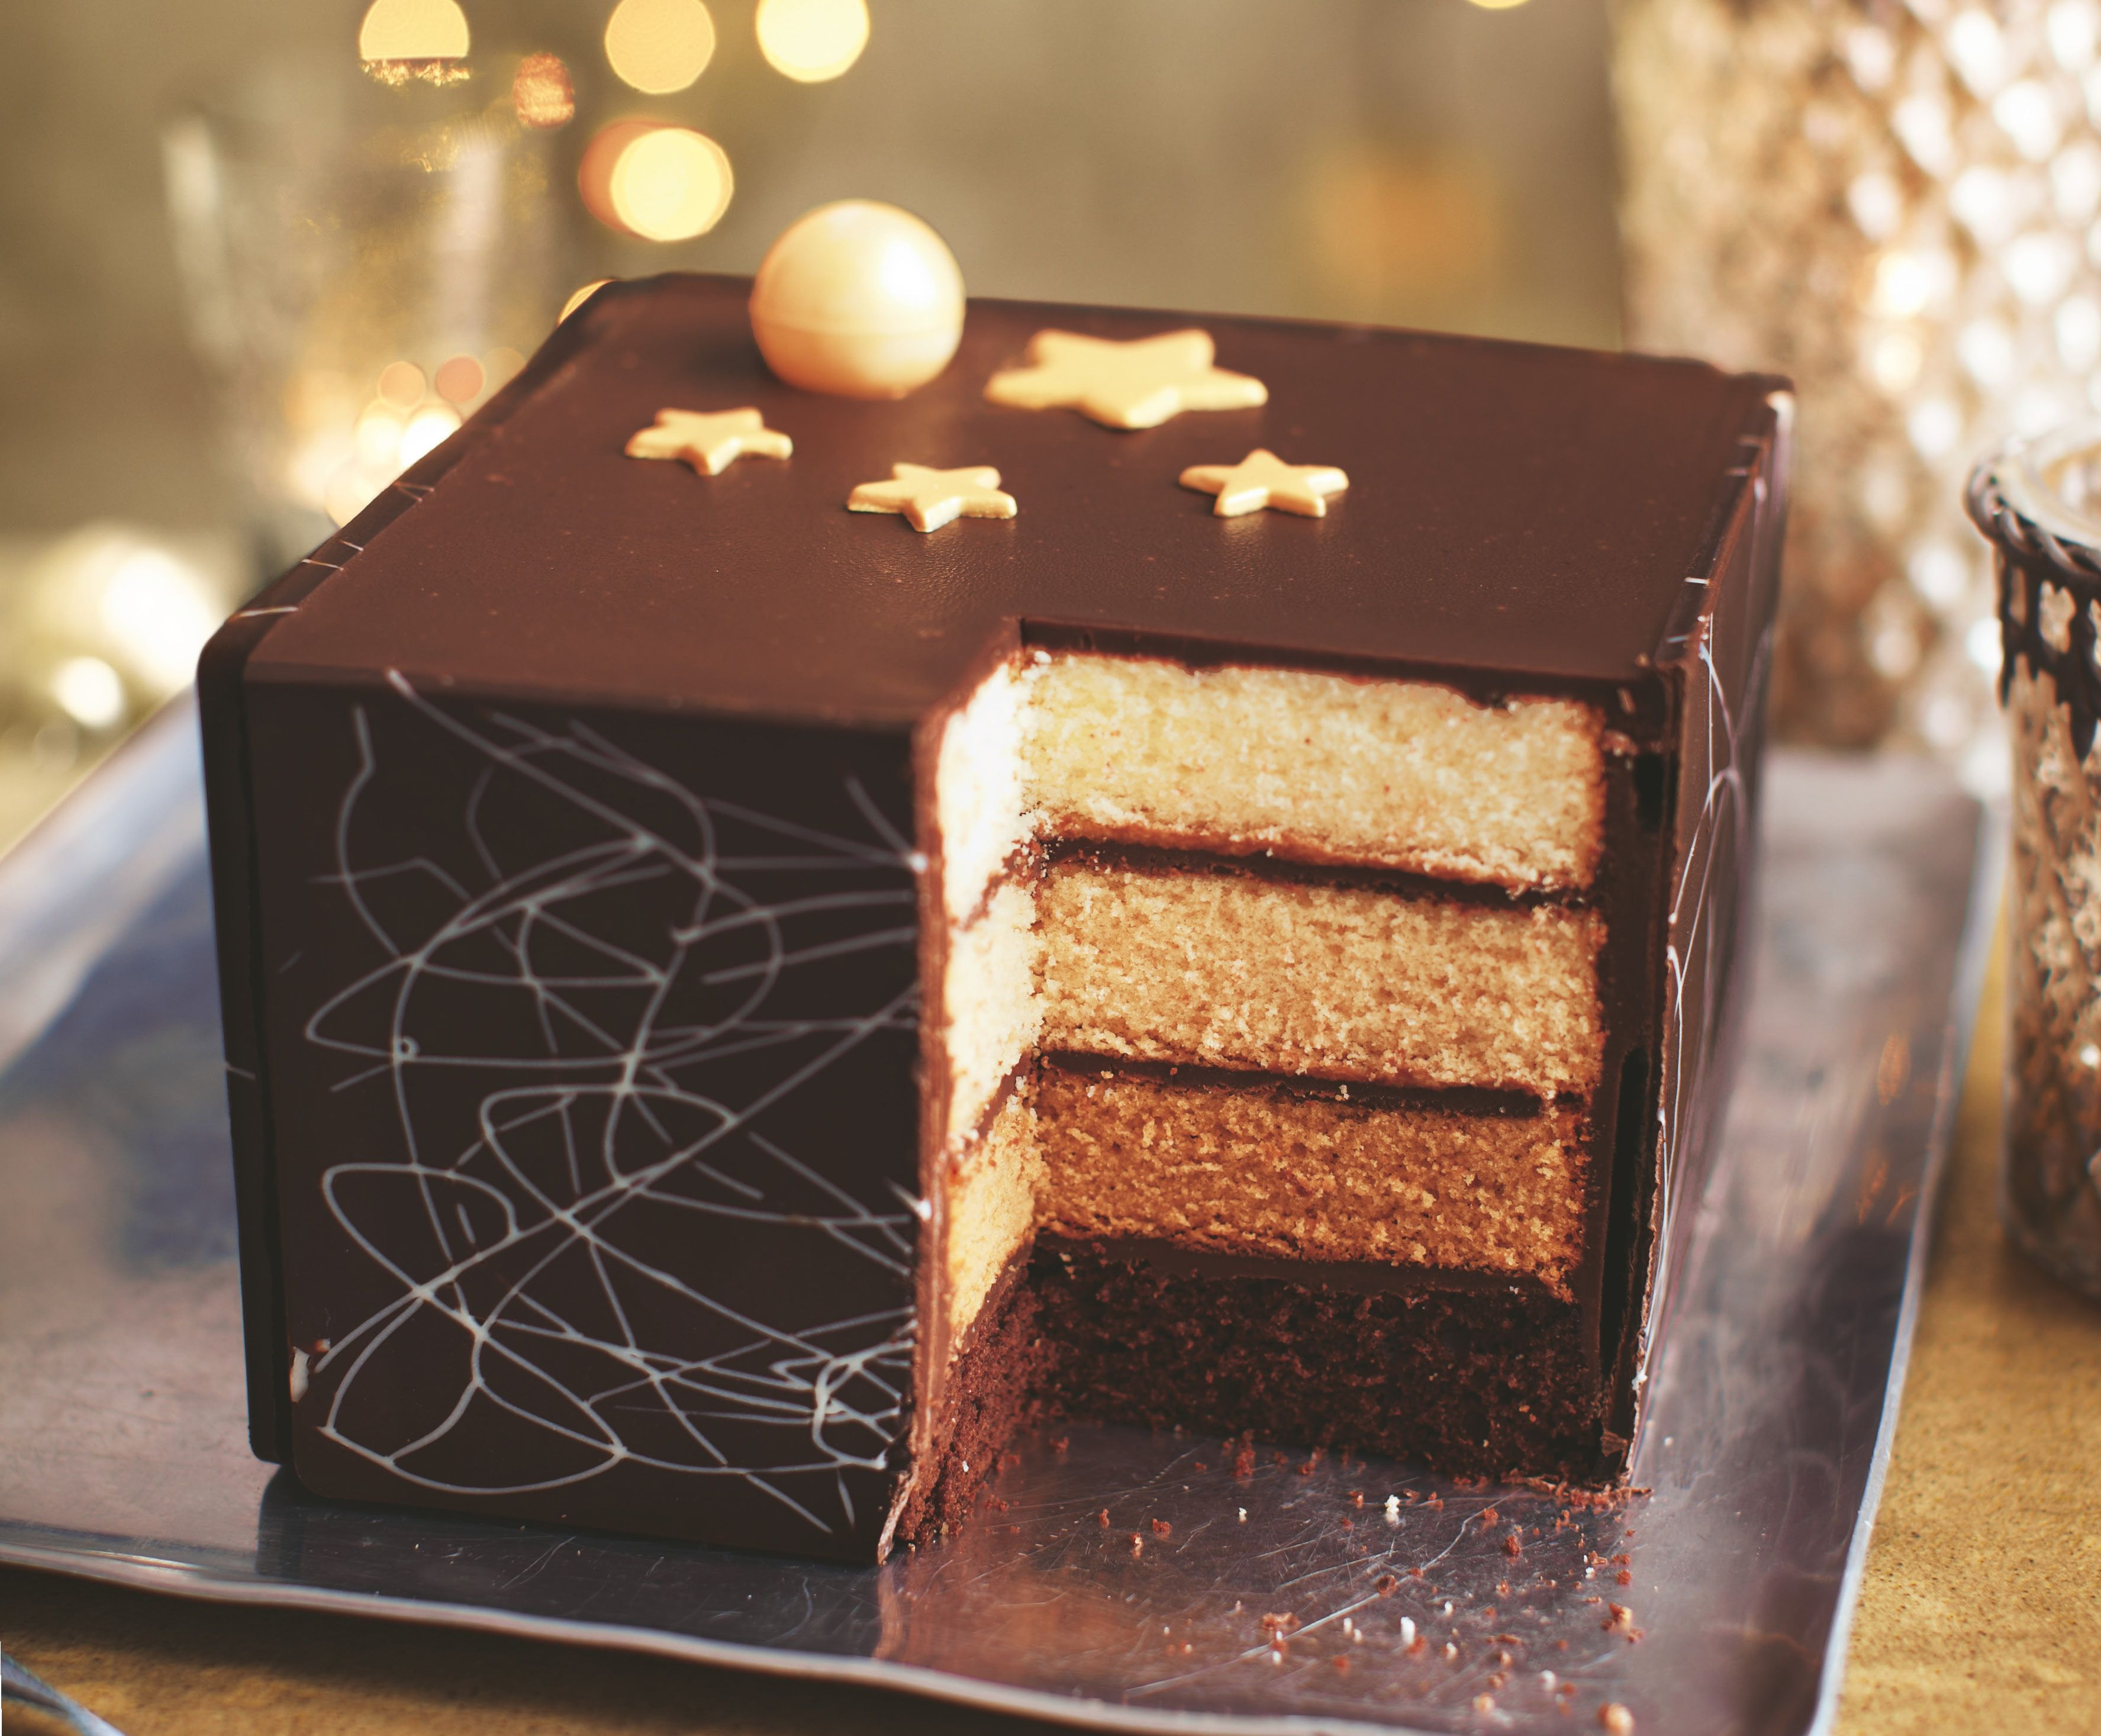 Asda Personalised Birthday Cakes In Store ~ Extra special belgian chocolate layer cake asda christmas